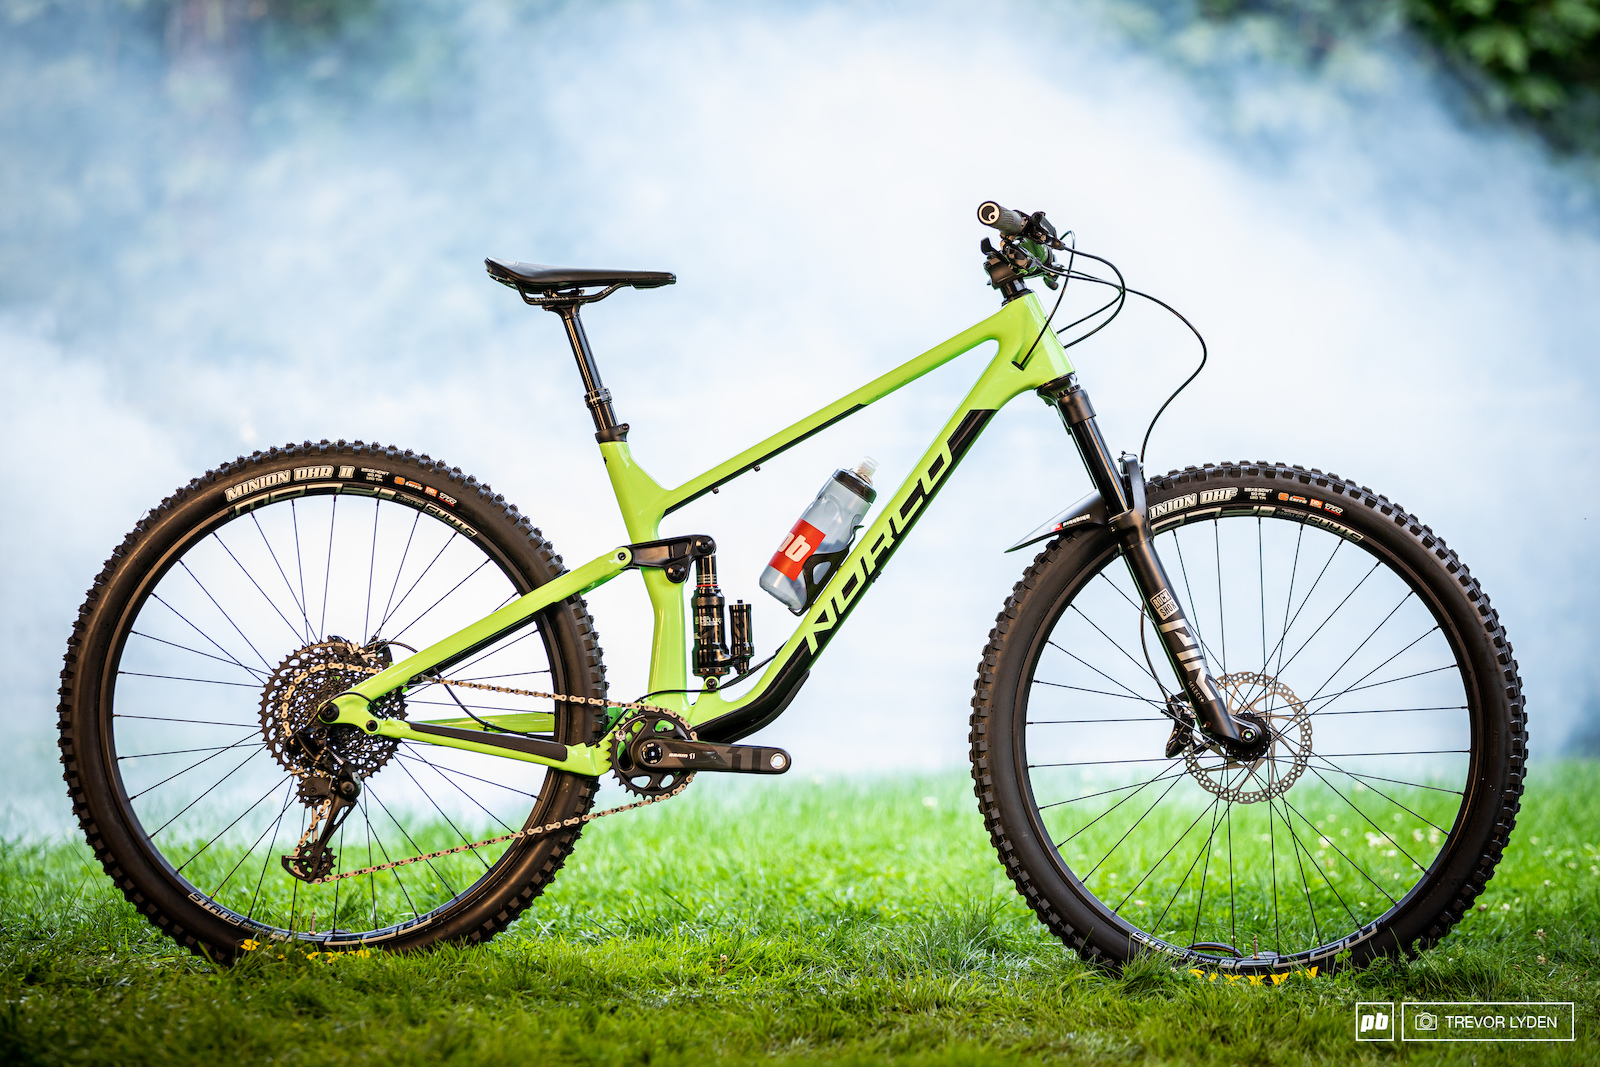 Norco Optic C2 review Photo by Trevor Lyden